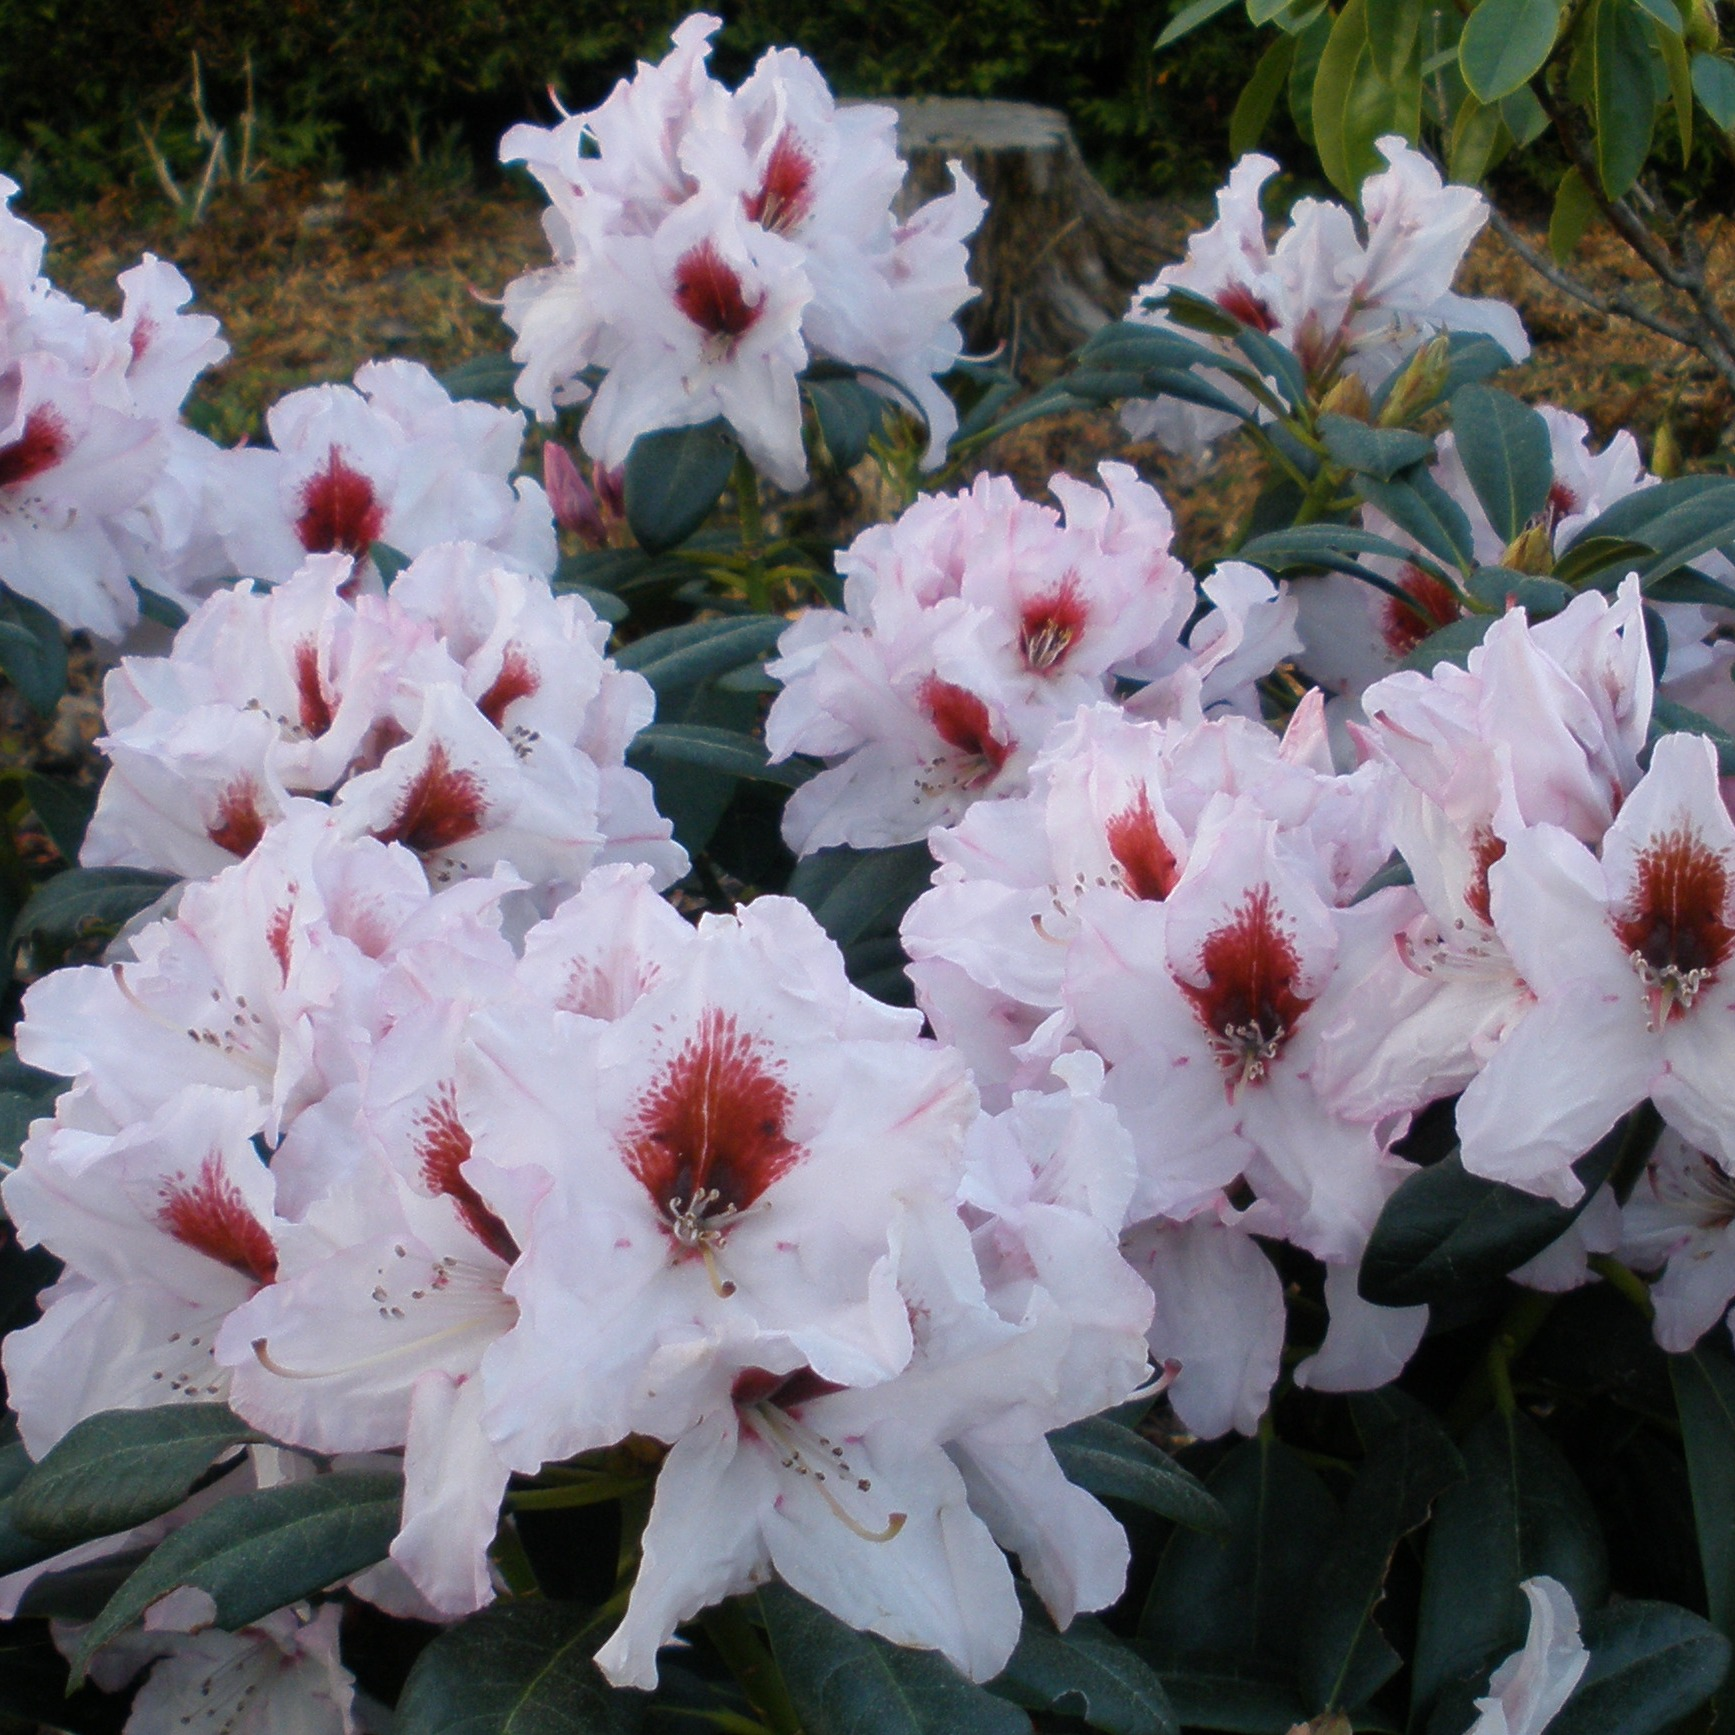 Millais Nurseries Grow One Of The Widest Ranges Rhododendrons In World Plus Camelliaagnolias They Have Achieved 4 Consecutive Gold Medals At